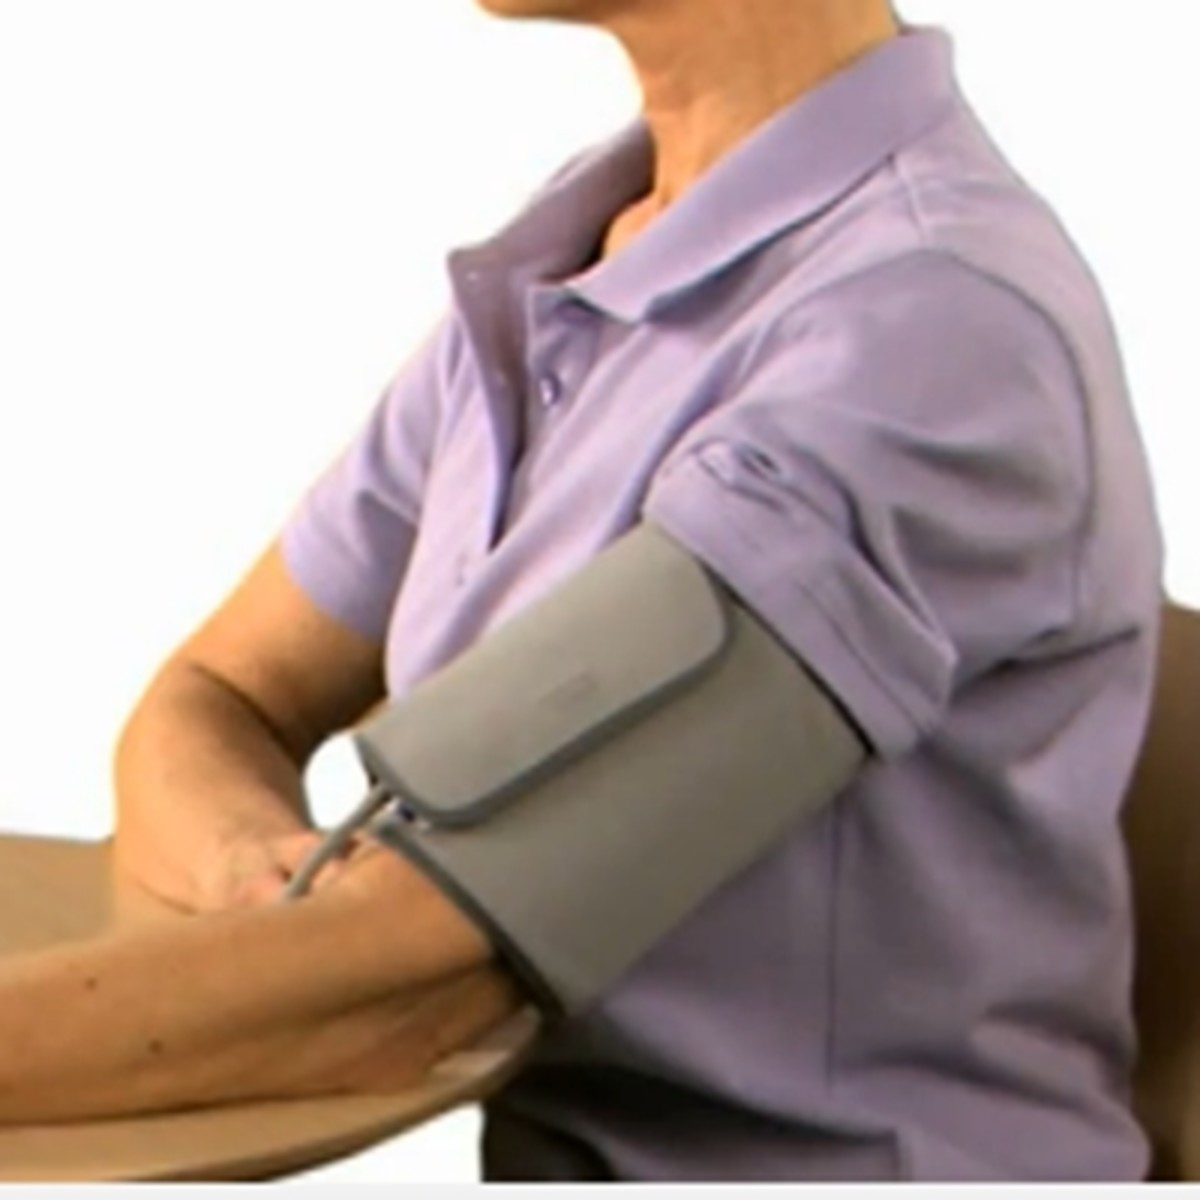 This is the upper arm blood pressure monitor from Omron in position. You can view an Amazon video of this product in use by using the link (above left).